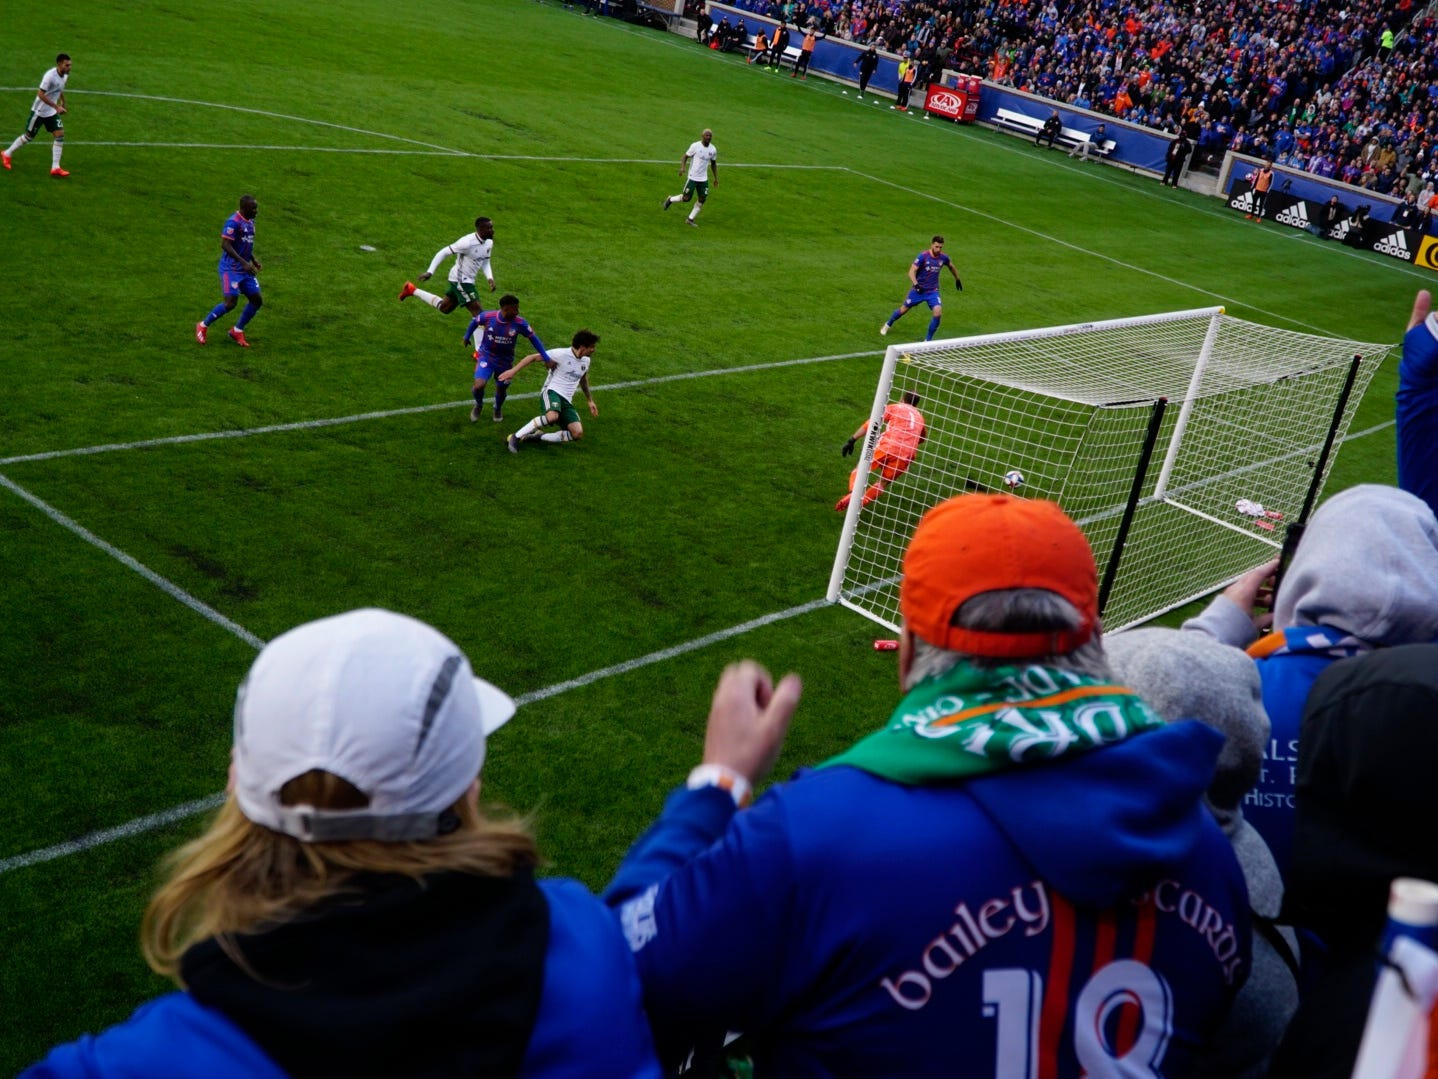 Fans celebrate back-to-back goals in the second half in FC Cincinnati's home game against Portland at Nippert Stadium, March 17, 2019